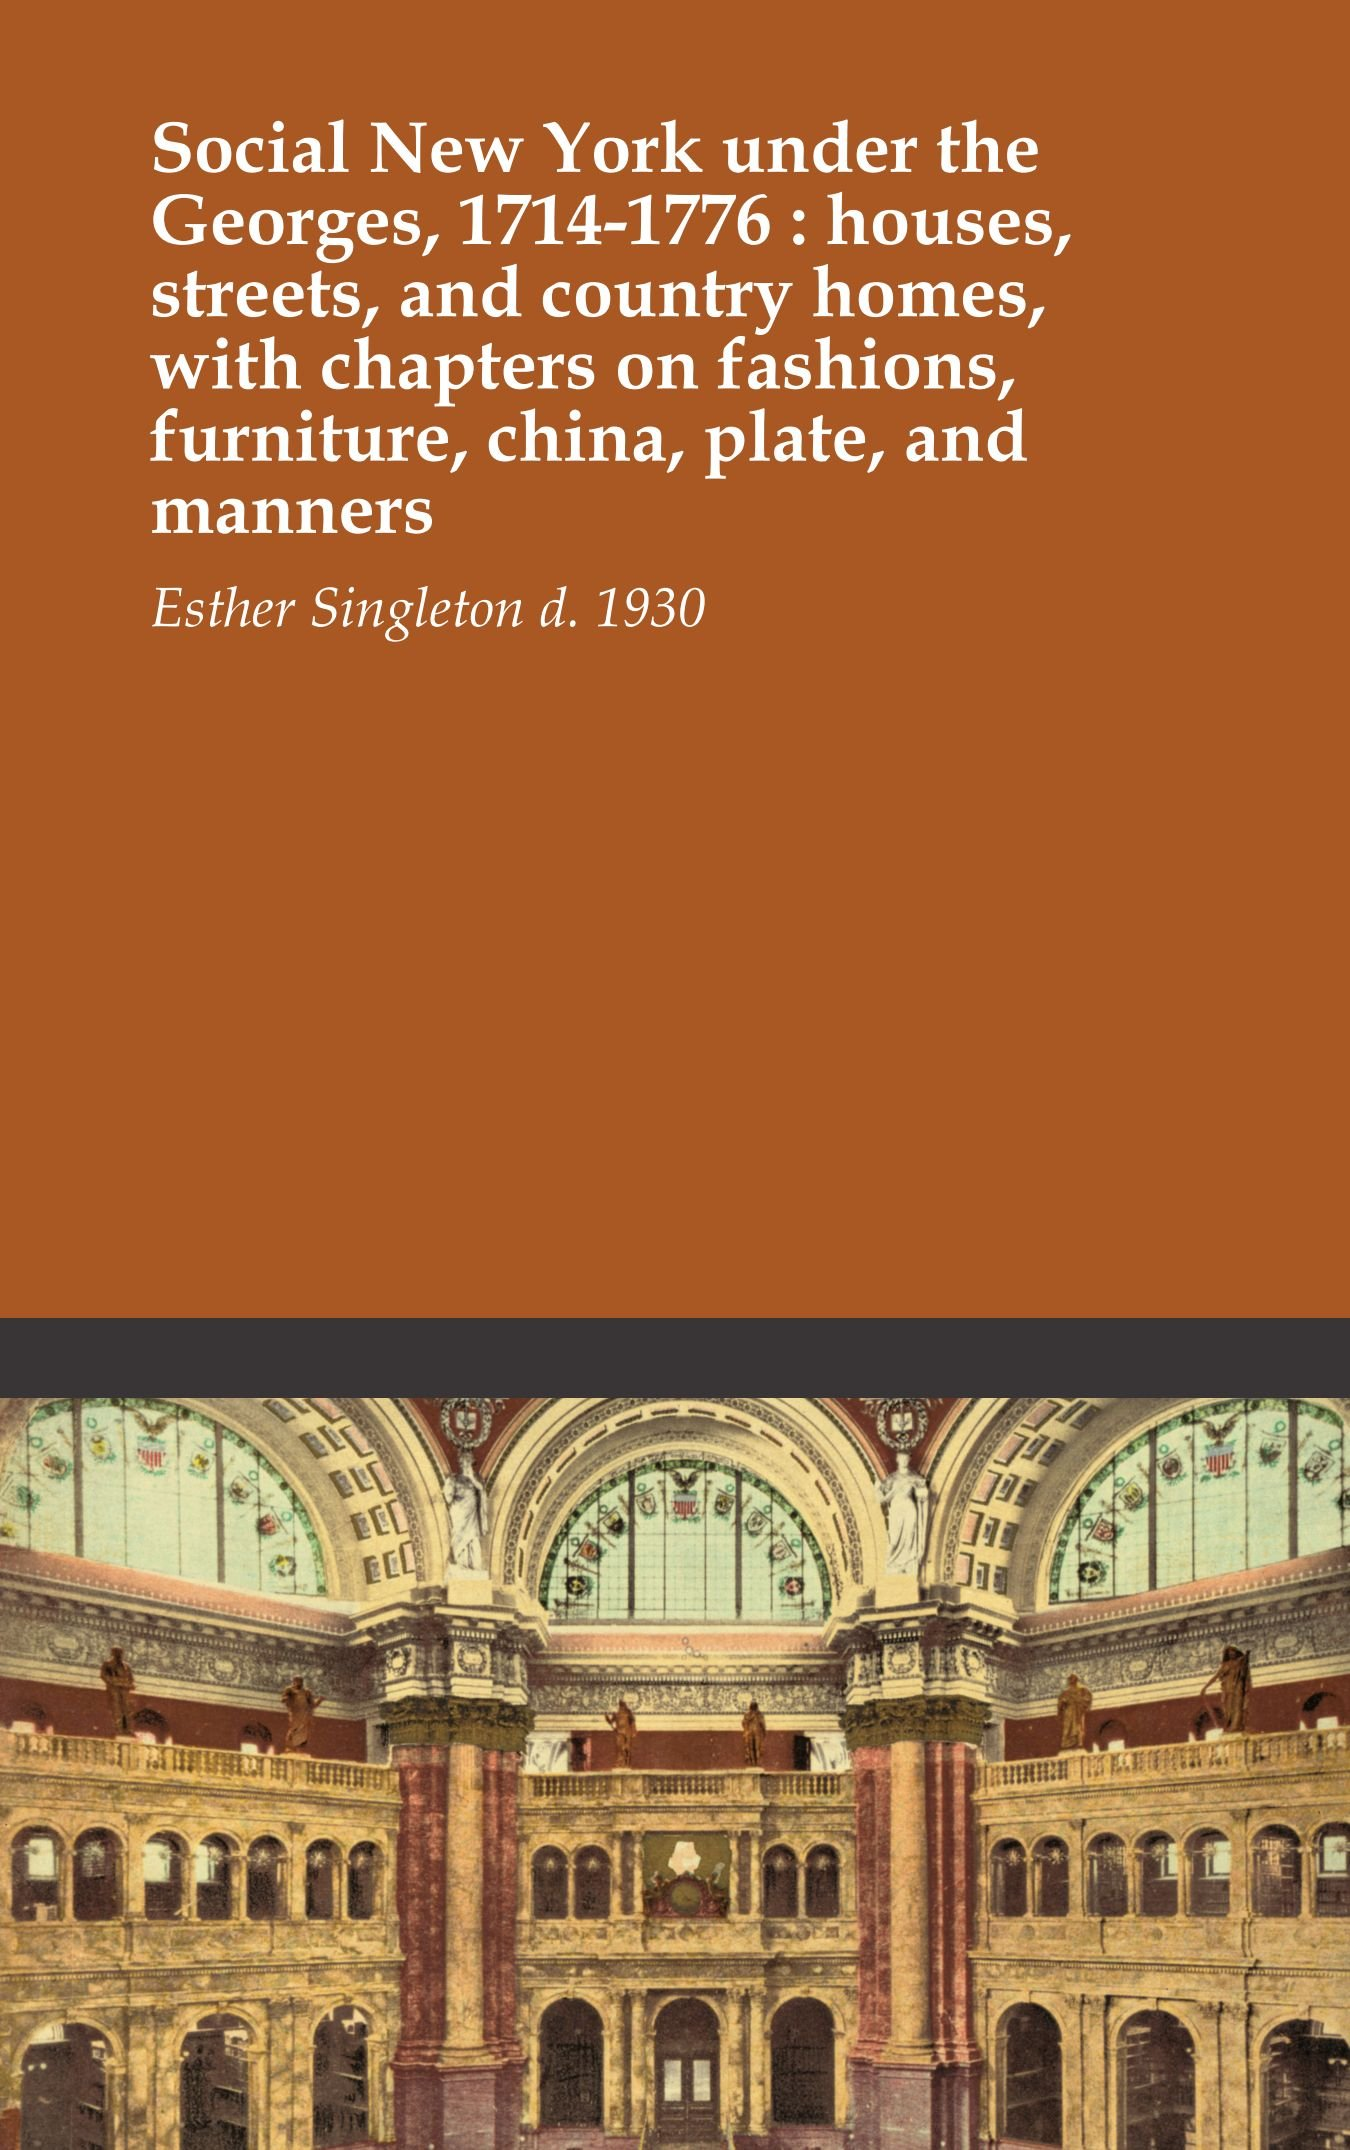 Social New York under the Georges, 1714-1776 : houses, streets, and country homes, with chapters on fashions, furniture, china, plate, and manners PDF